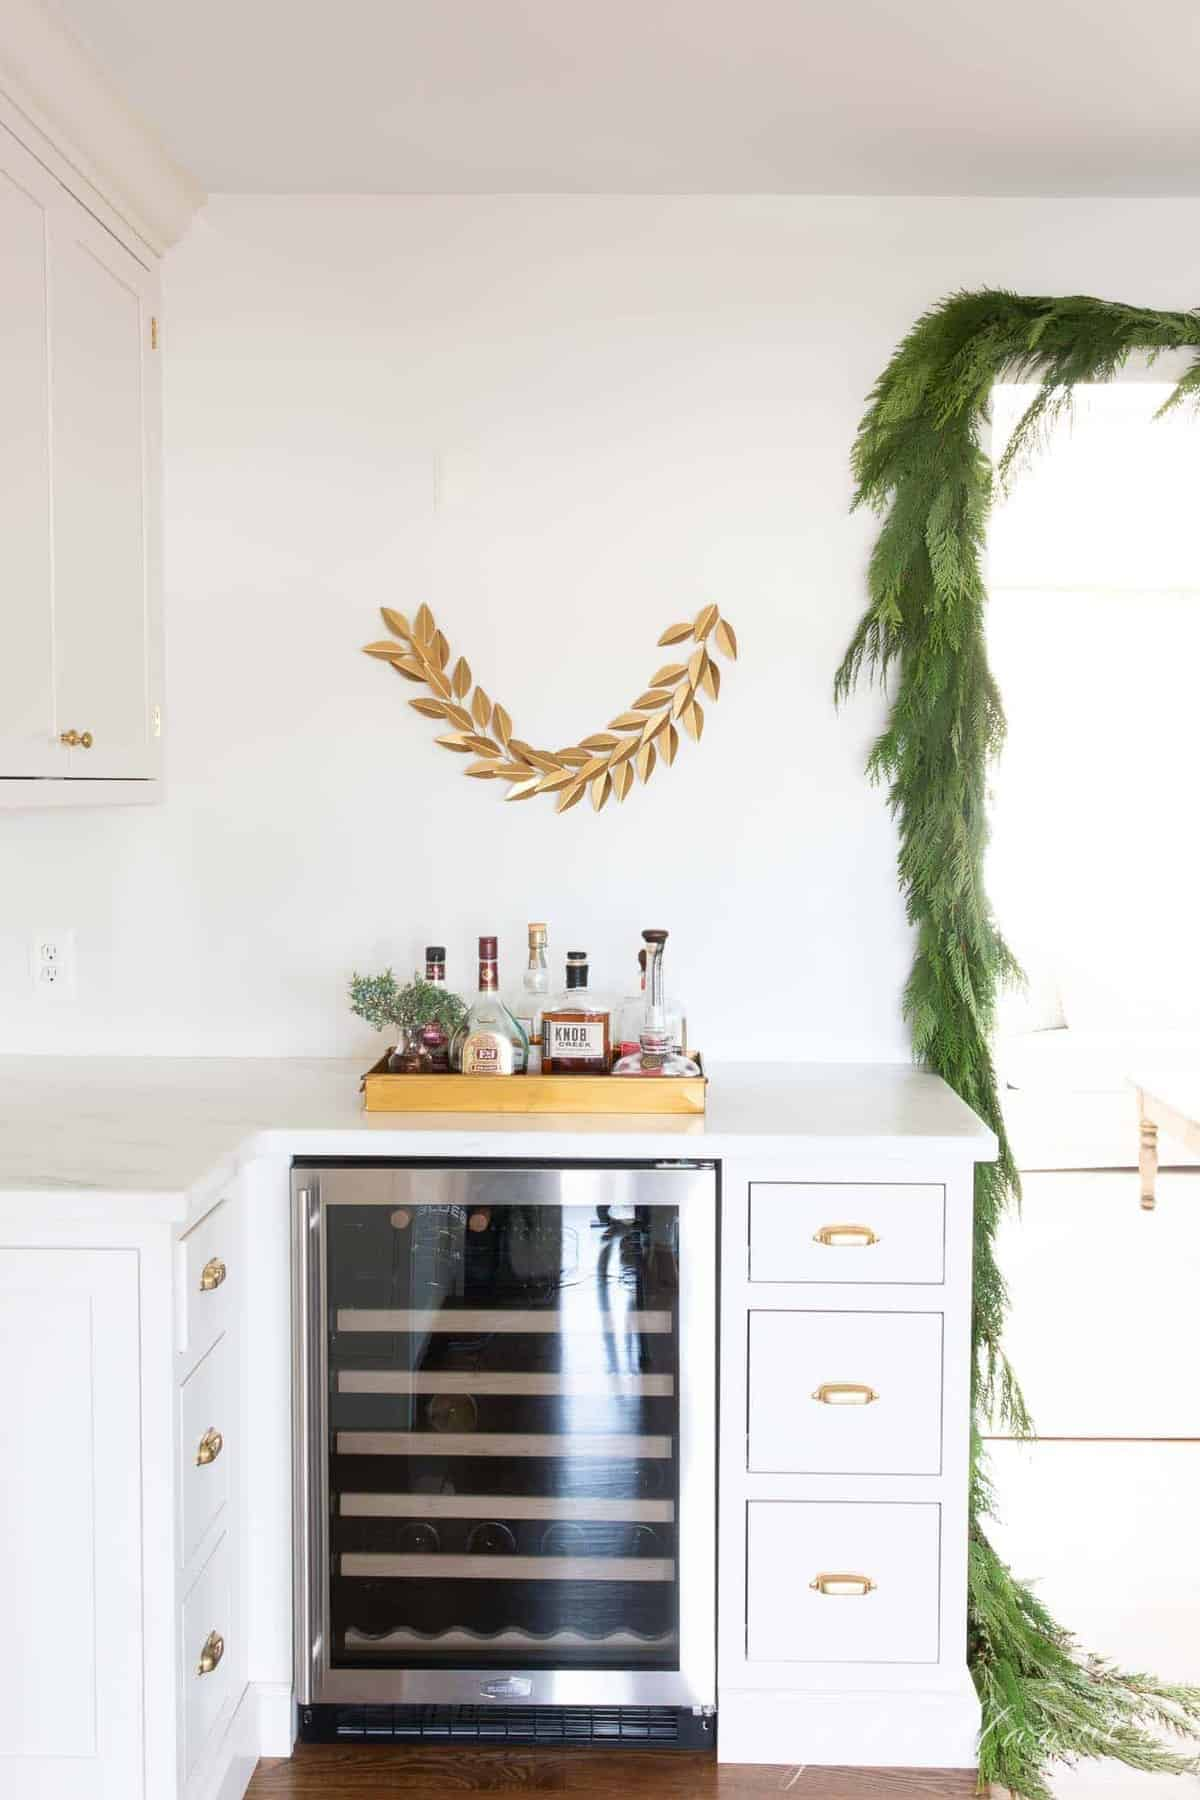 A kitchen with inset cabinets and a wine fridge, Christmas greenery hanging.